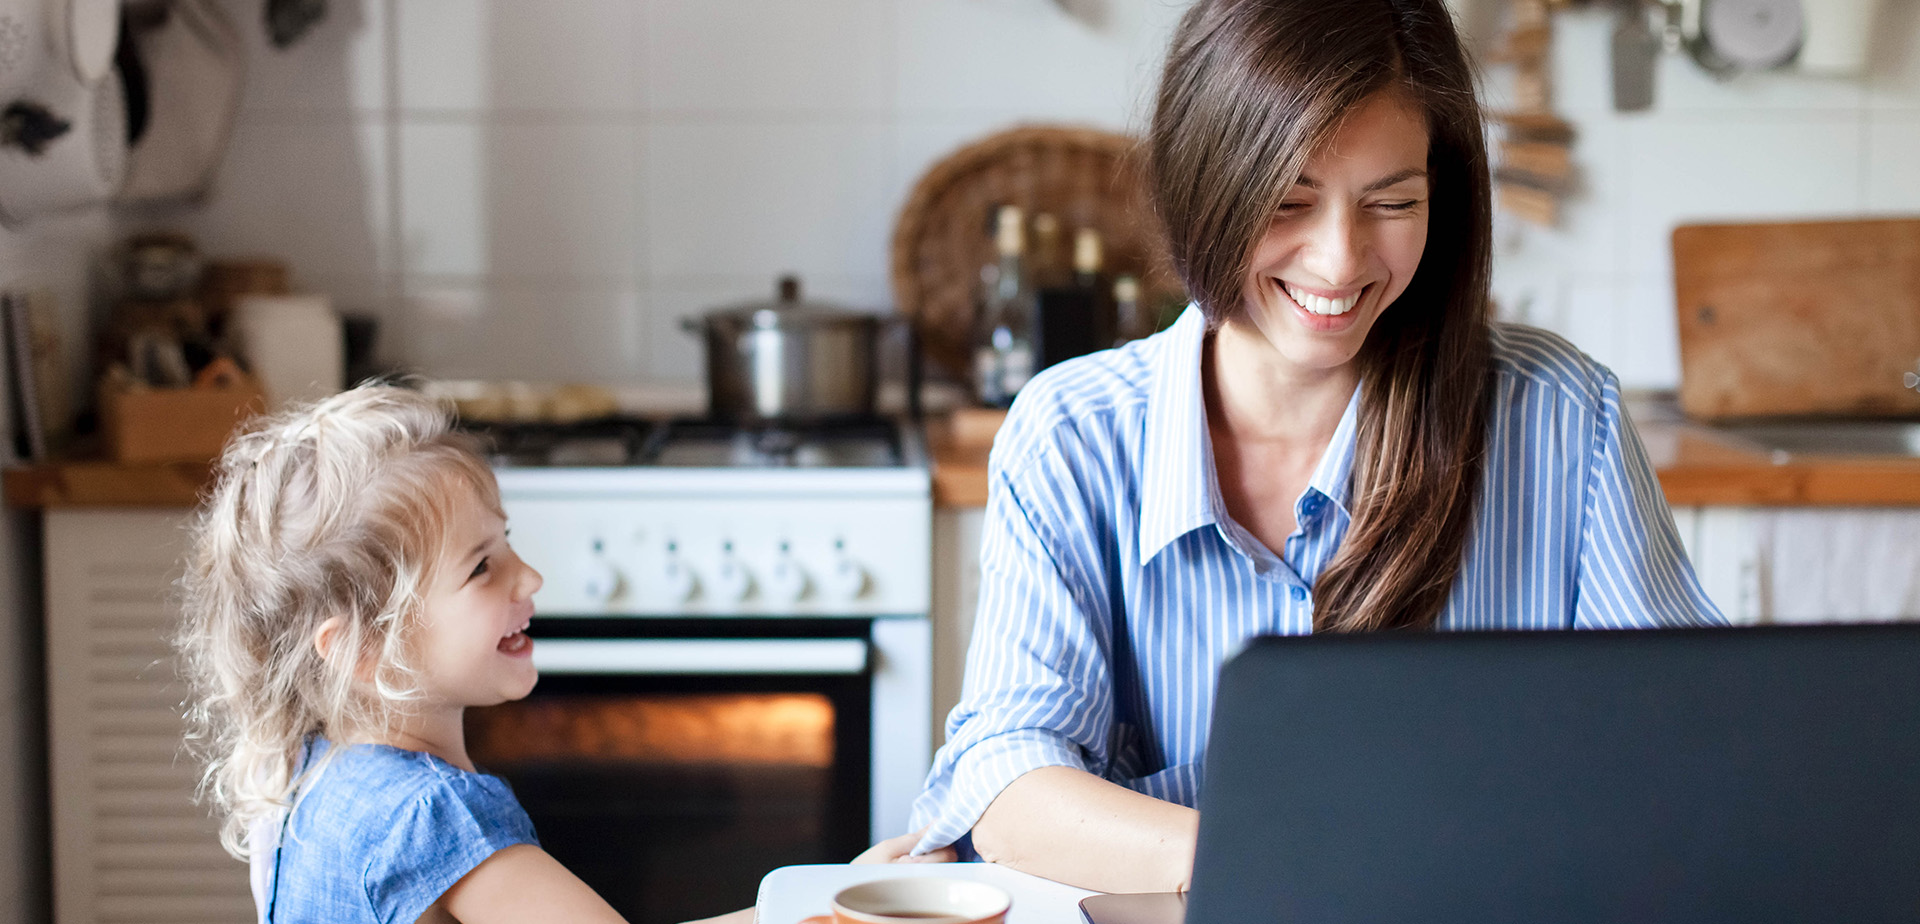 Working mom works from home office. Happy mother and daughter smiling. Successful woman and cute child using laptop. Freelancer workplace in cozy kitchen. Female business. Lifestyle authentic moment.